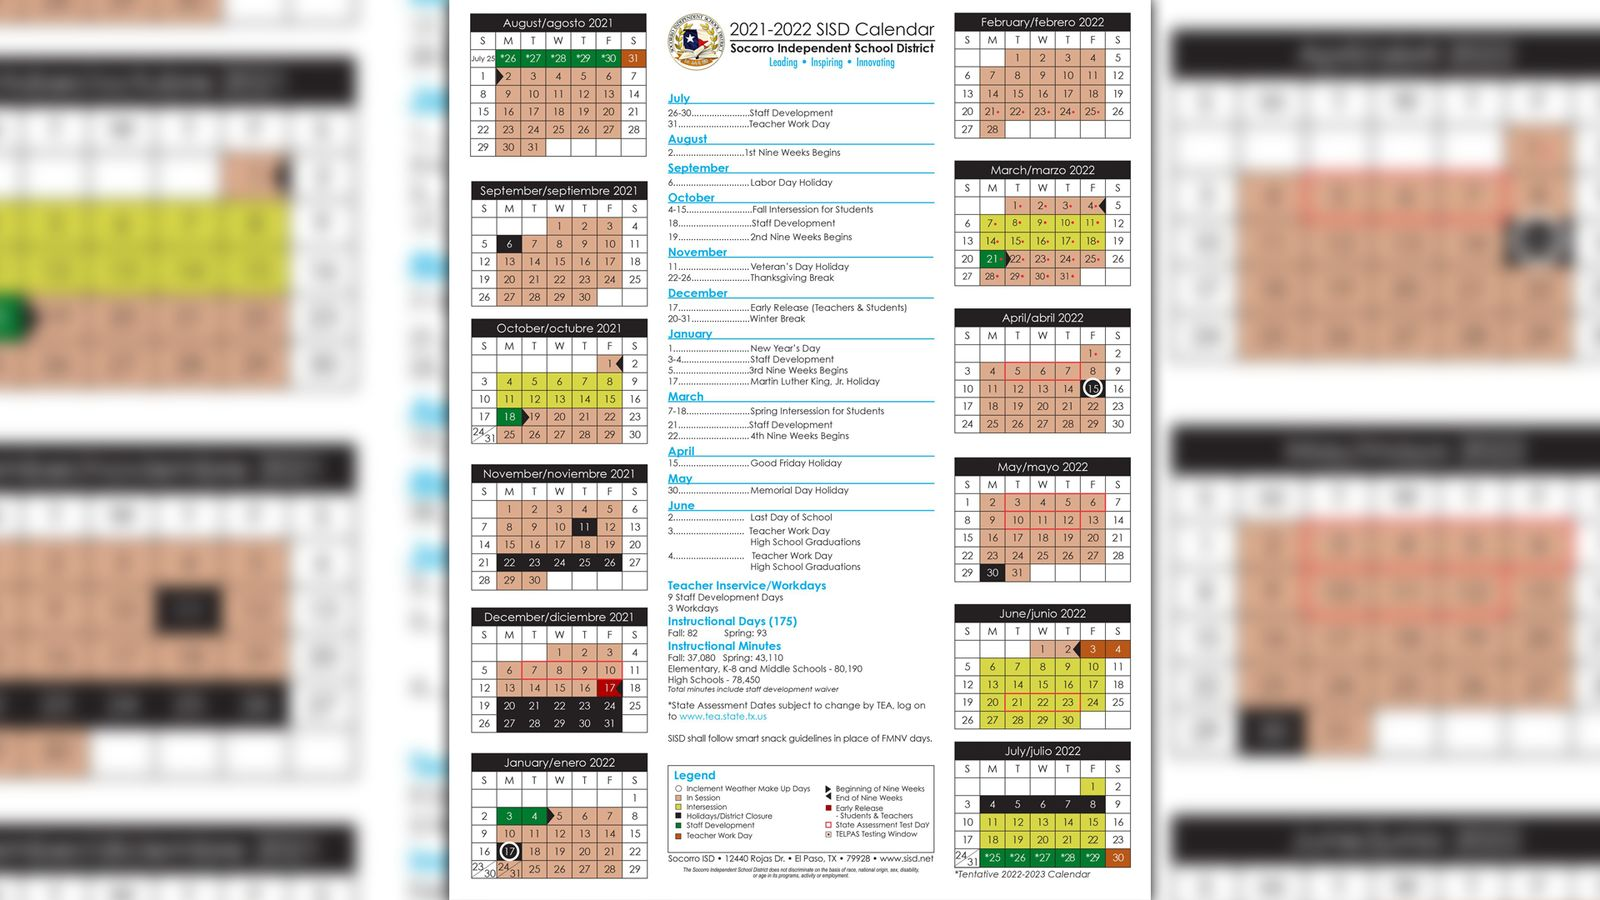 Sisd Calendar 2022 2023.S I S D 2 0 2 1 2 0 2 2 C A L E N D A R Zonealarm Results